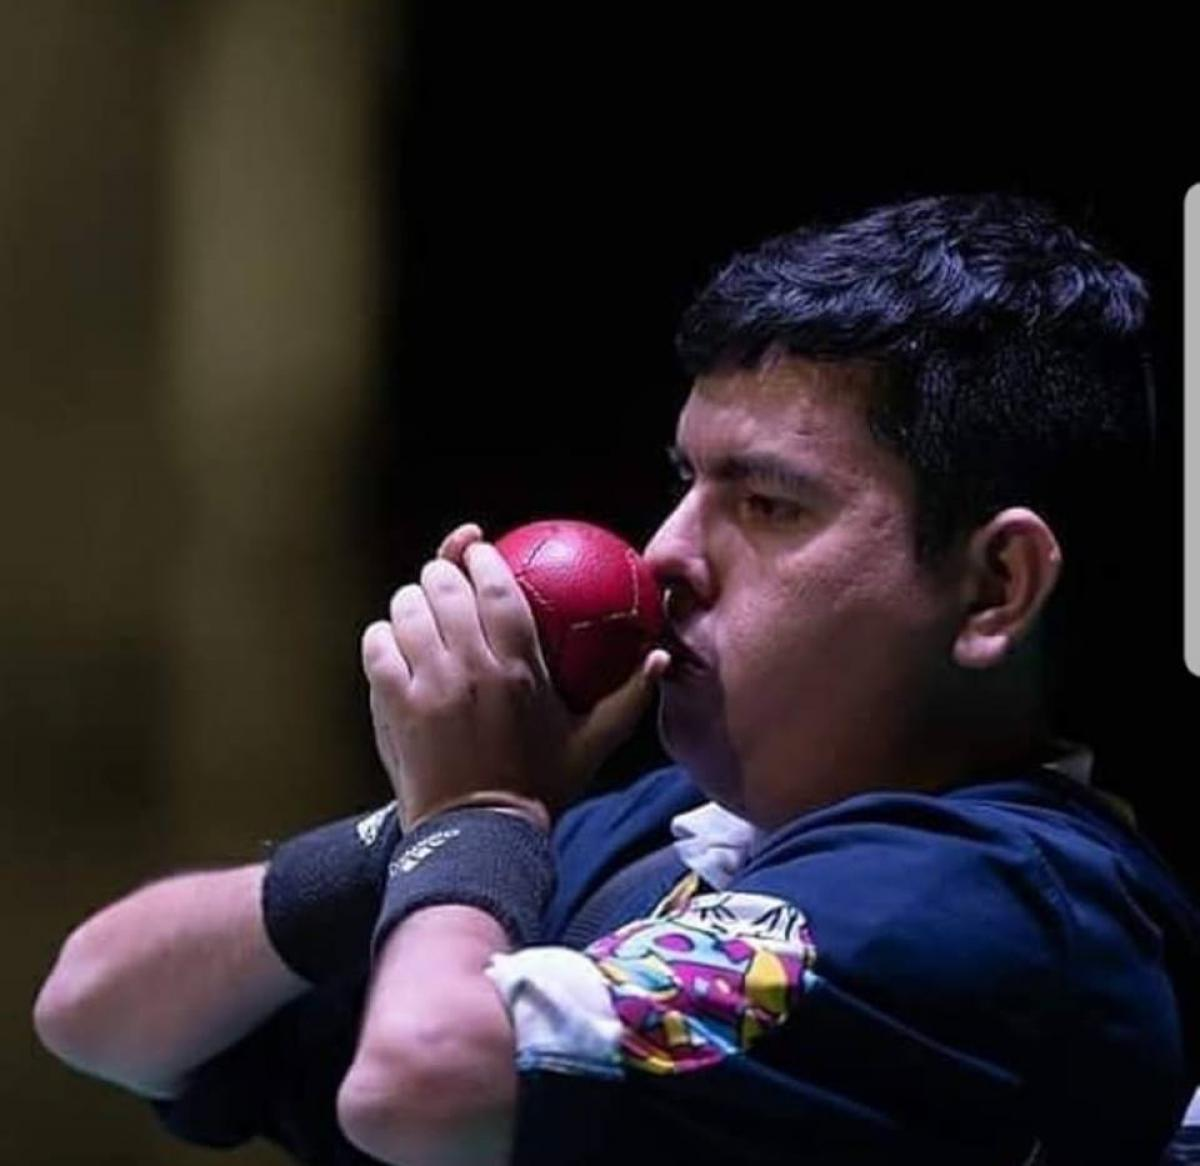 male boccia player Euclides Grisales prepares to throw the ball